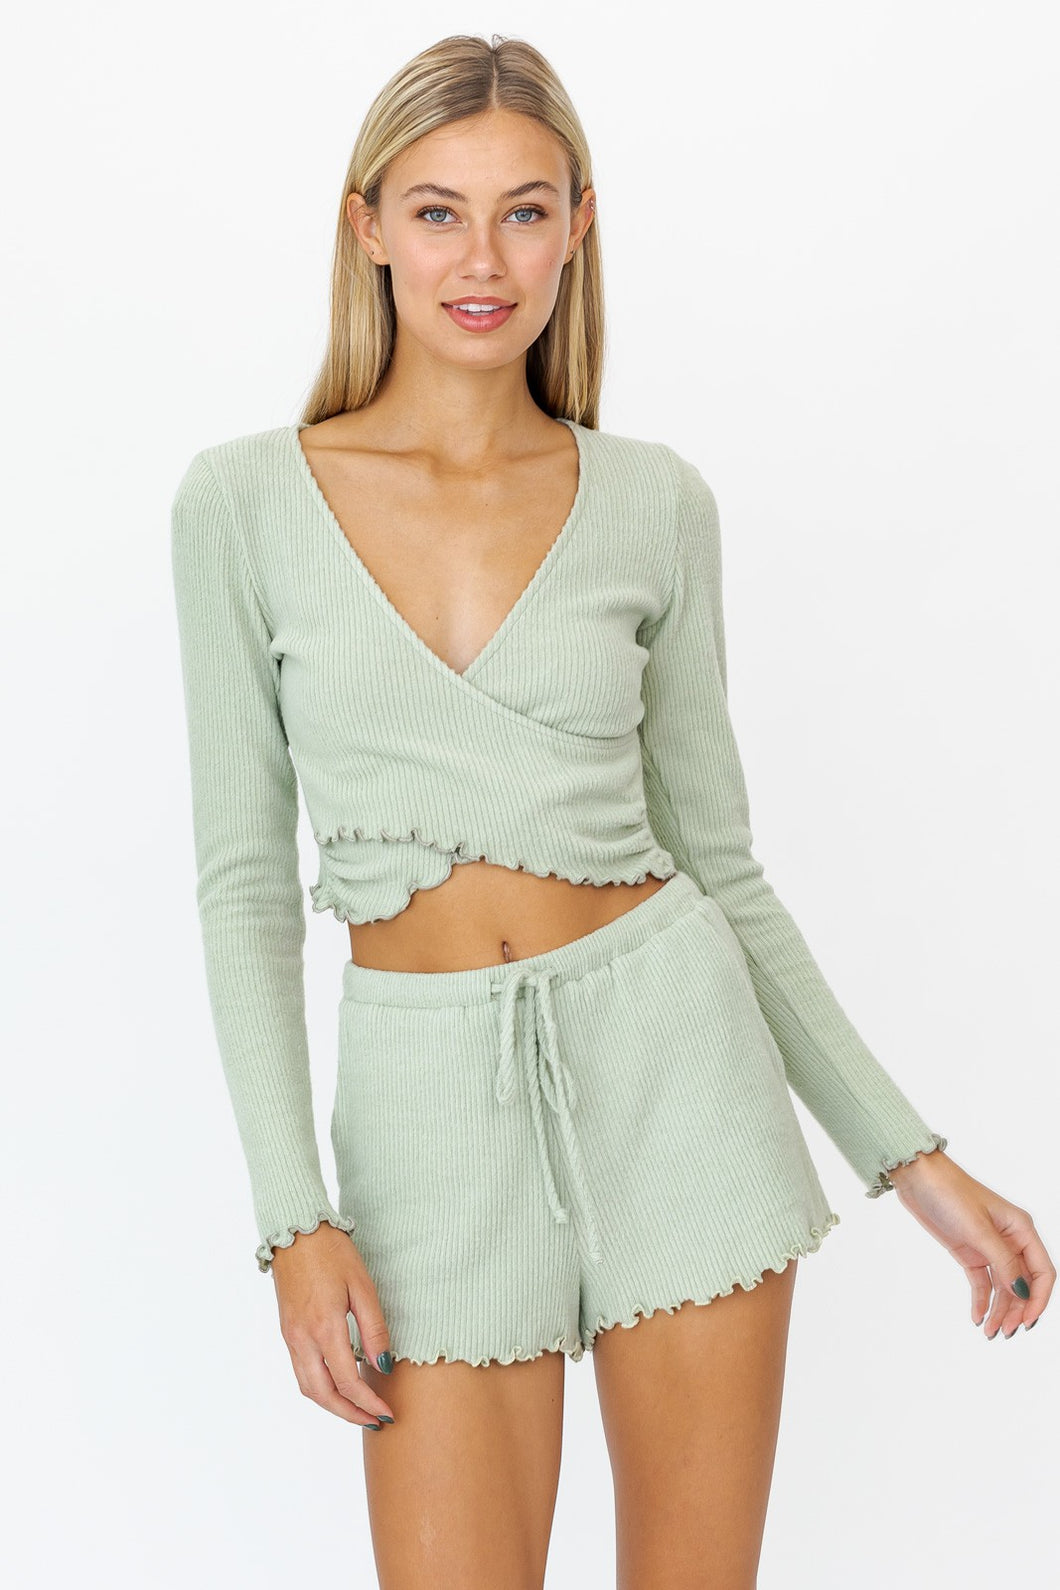 Modern Romance Boutique - Julia Wrap Top